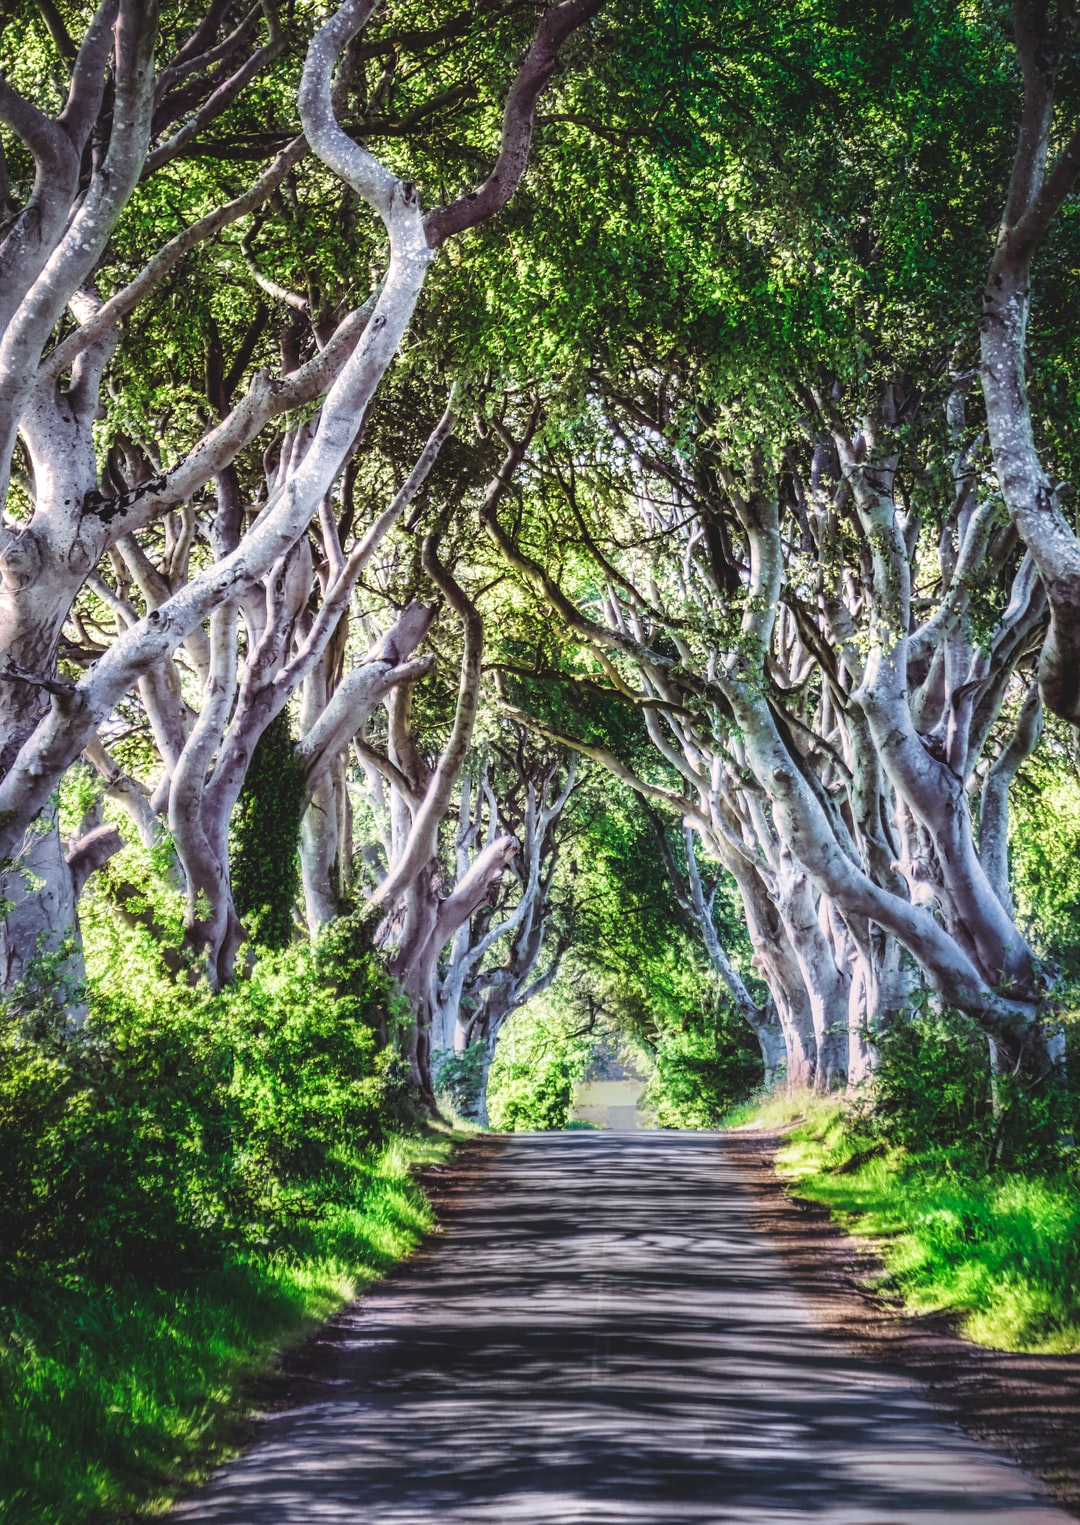 The Dark Hedges from Game of Thrones (Jun., 2020).